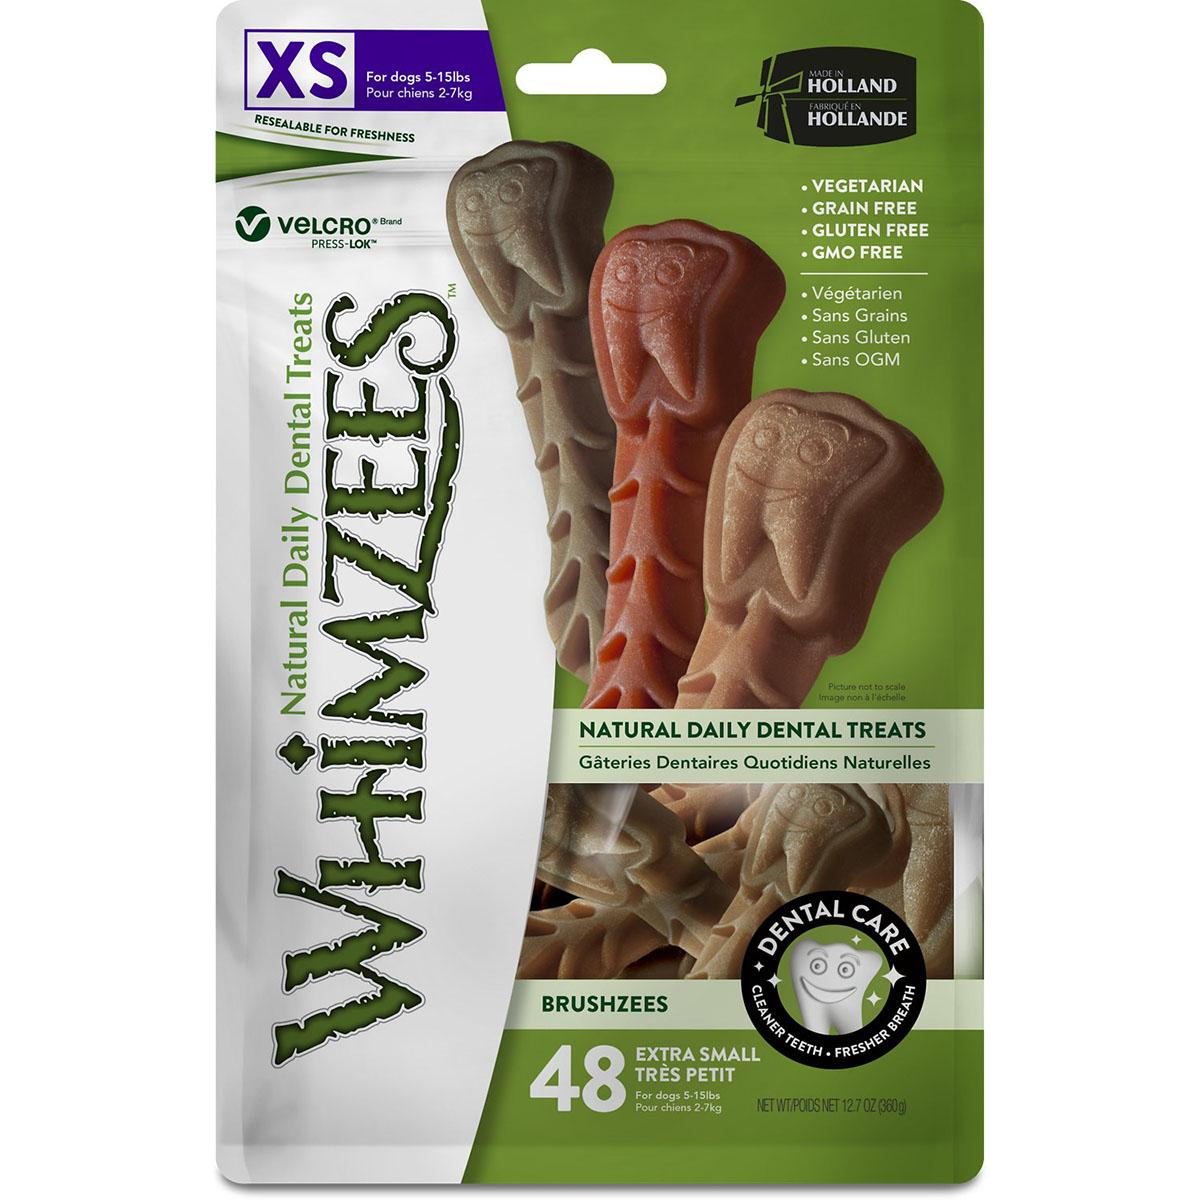 Whimzees Brushzees Natural Dental Dog Treats